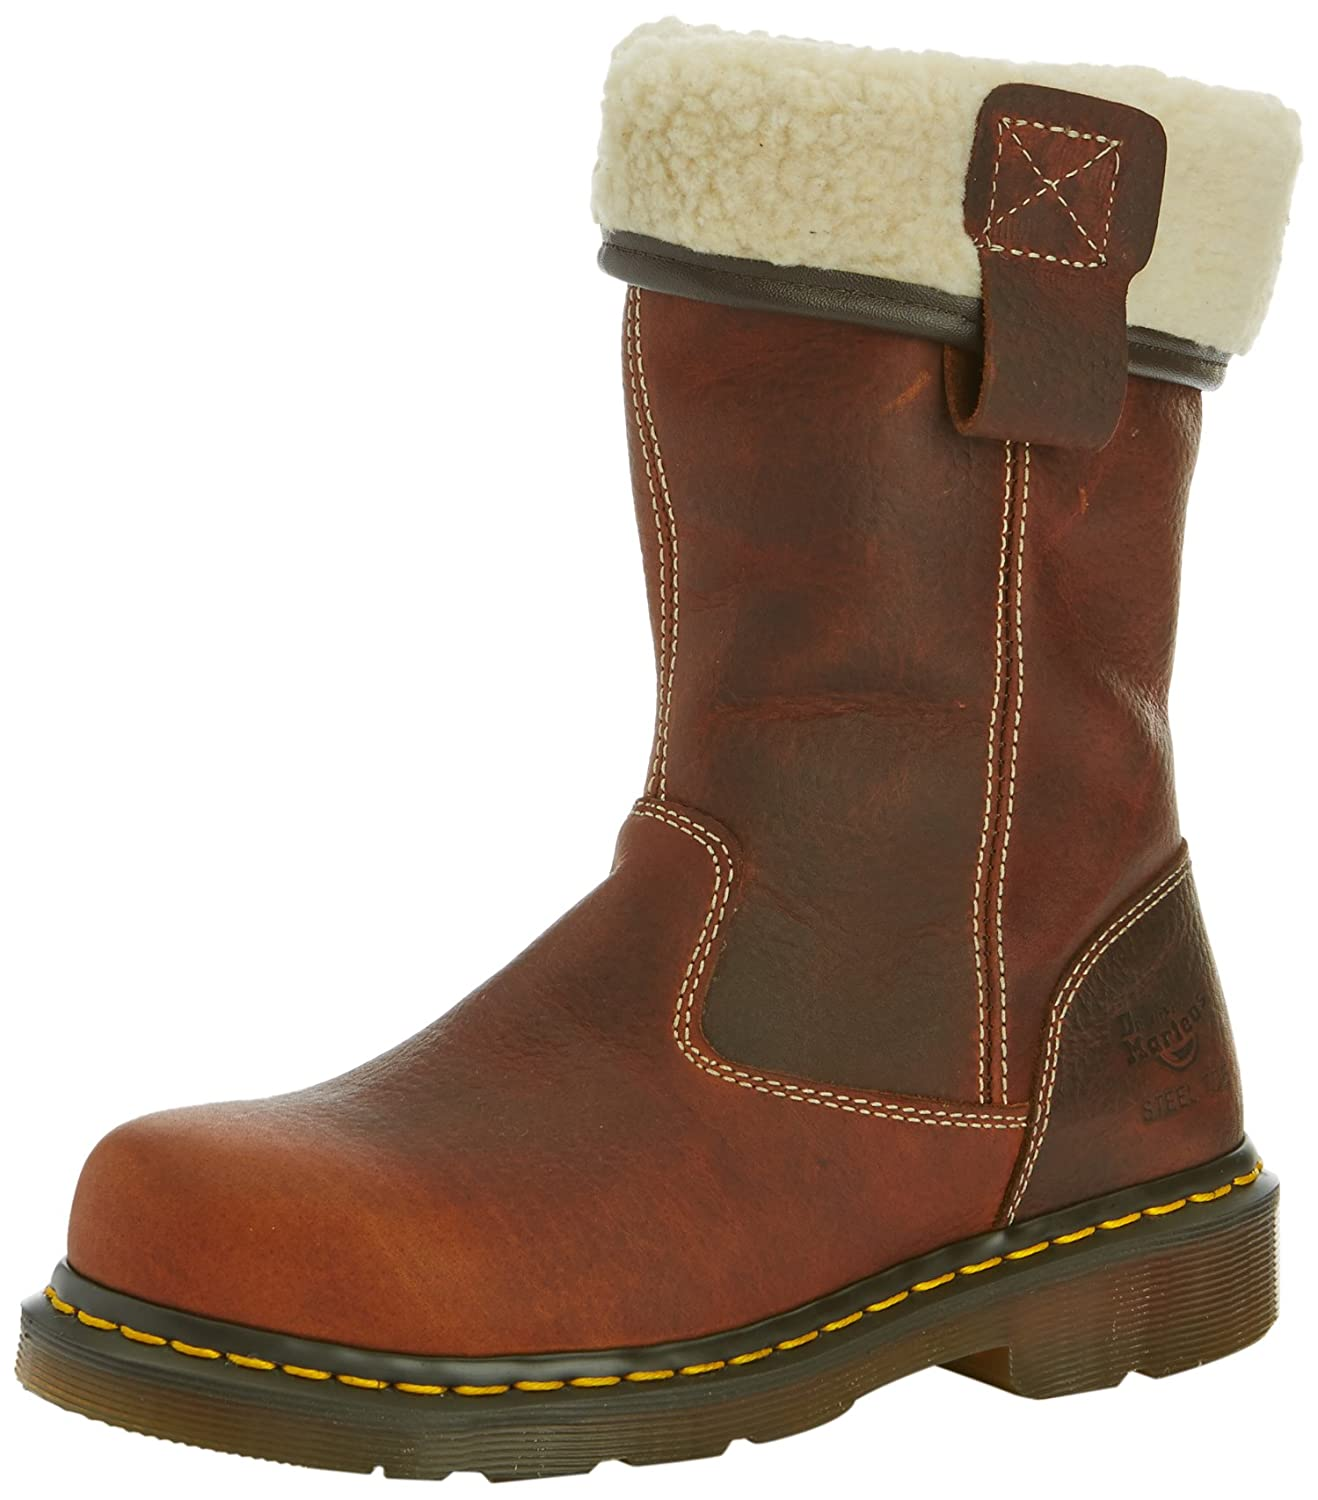 Dr. Marten's Rosa, Women's Safety Boots Women's Safety Boots Dr. Martens Industrial 6807